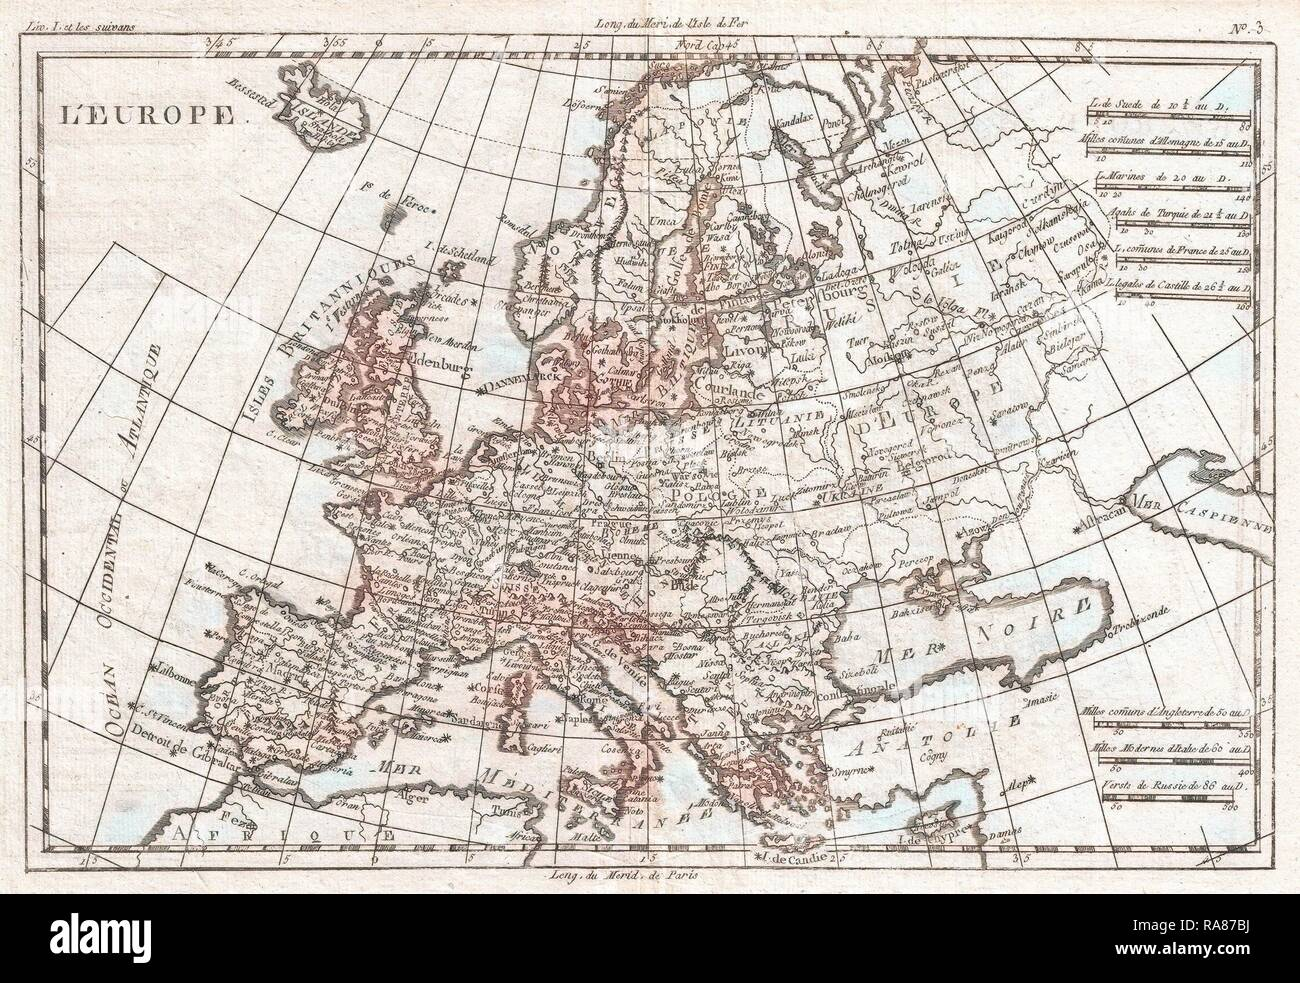 1780, Raynal and Bonne Map of Europe, Rigobert Bonne 1727 – 1794, one of the most important cartographers of the late reimagined - Stock Image